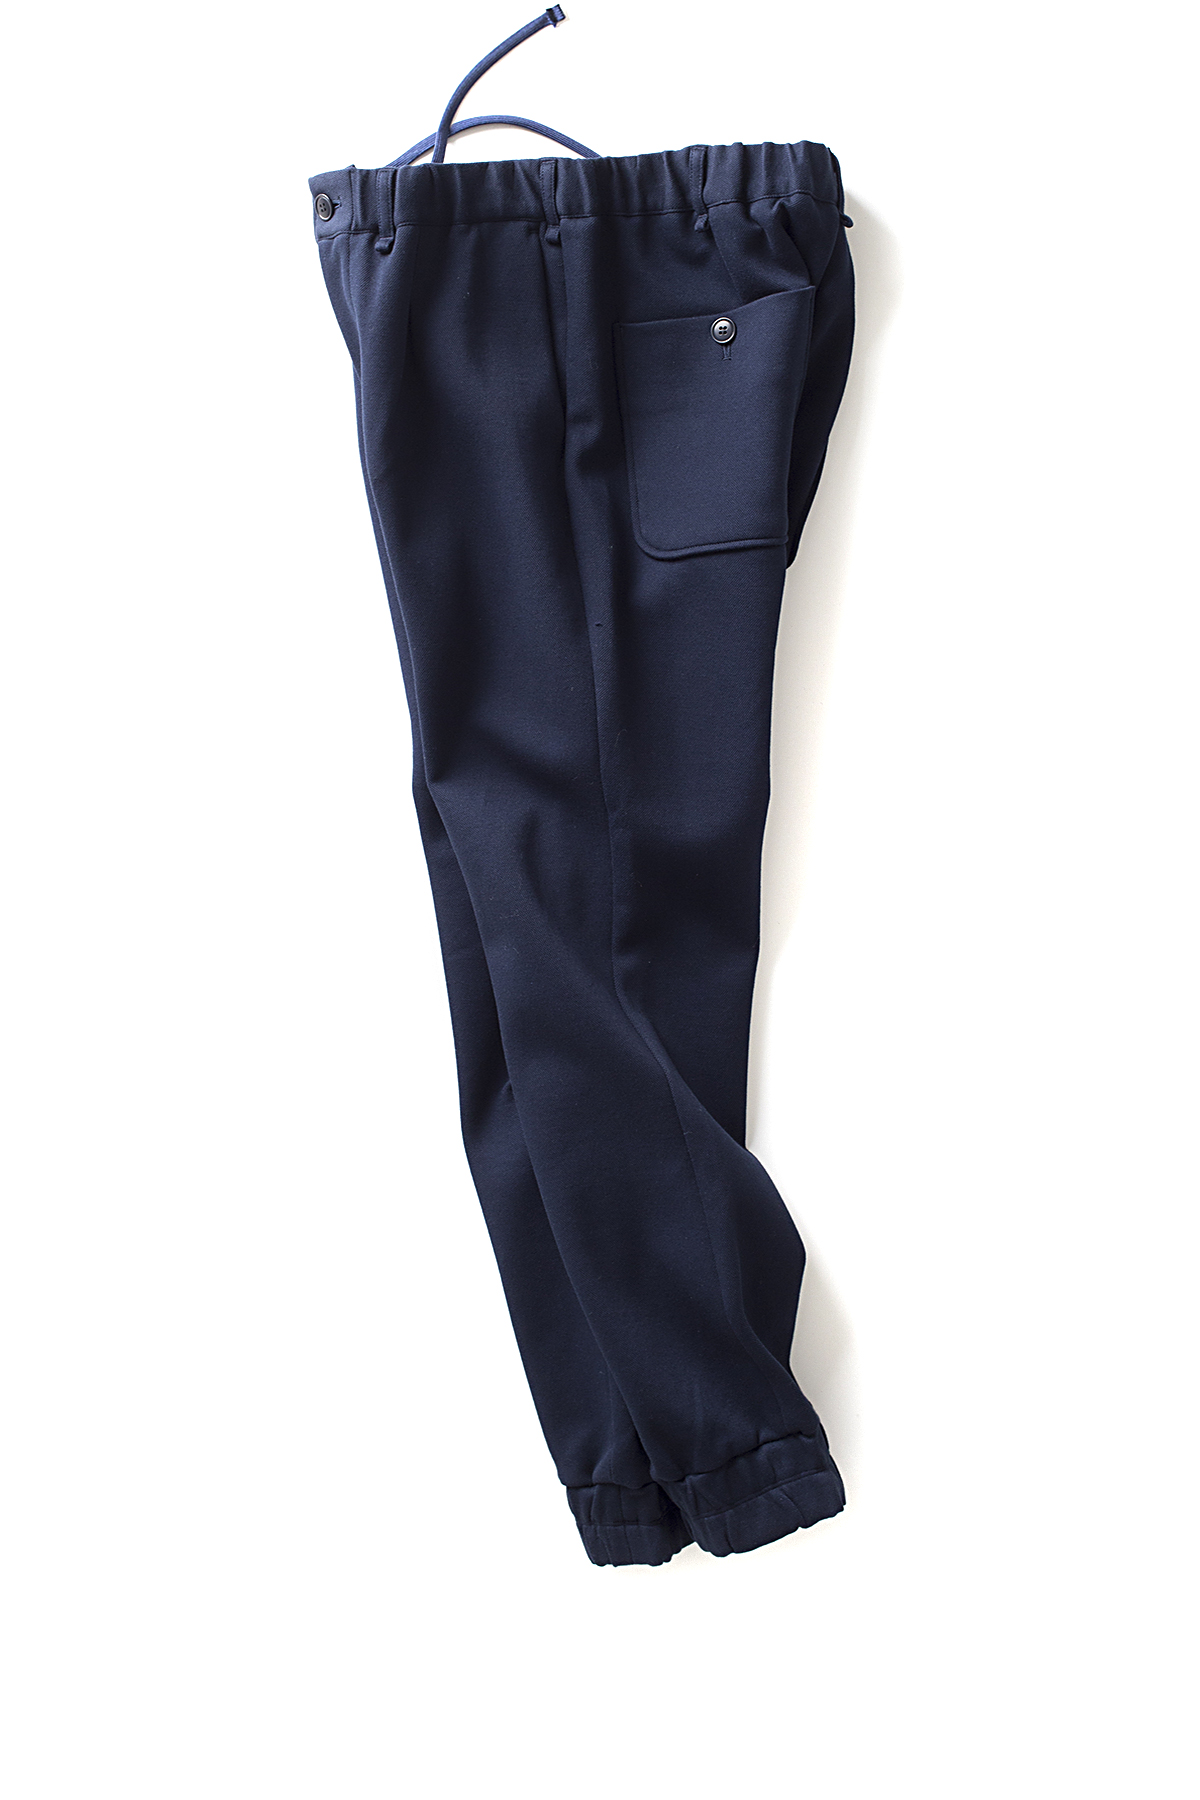 Curly : Blender Rib Trousers (Navy)